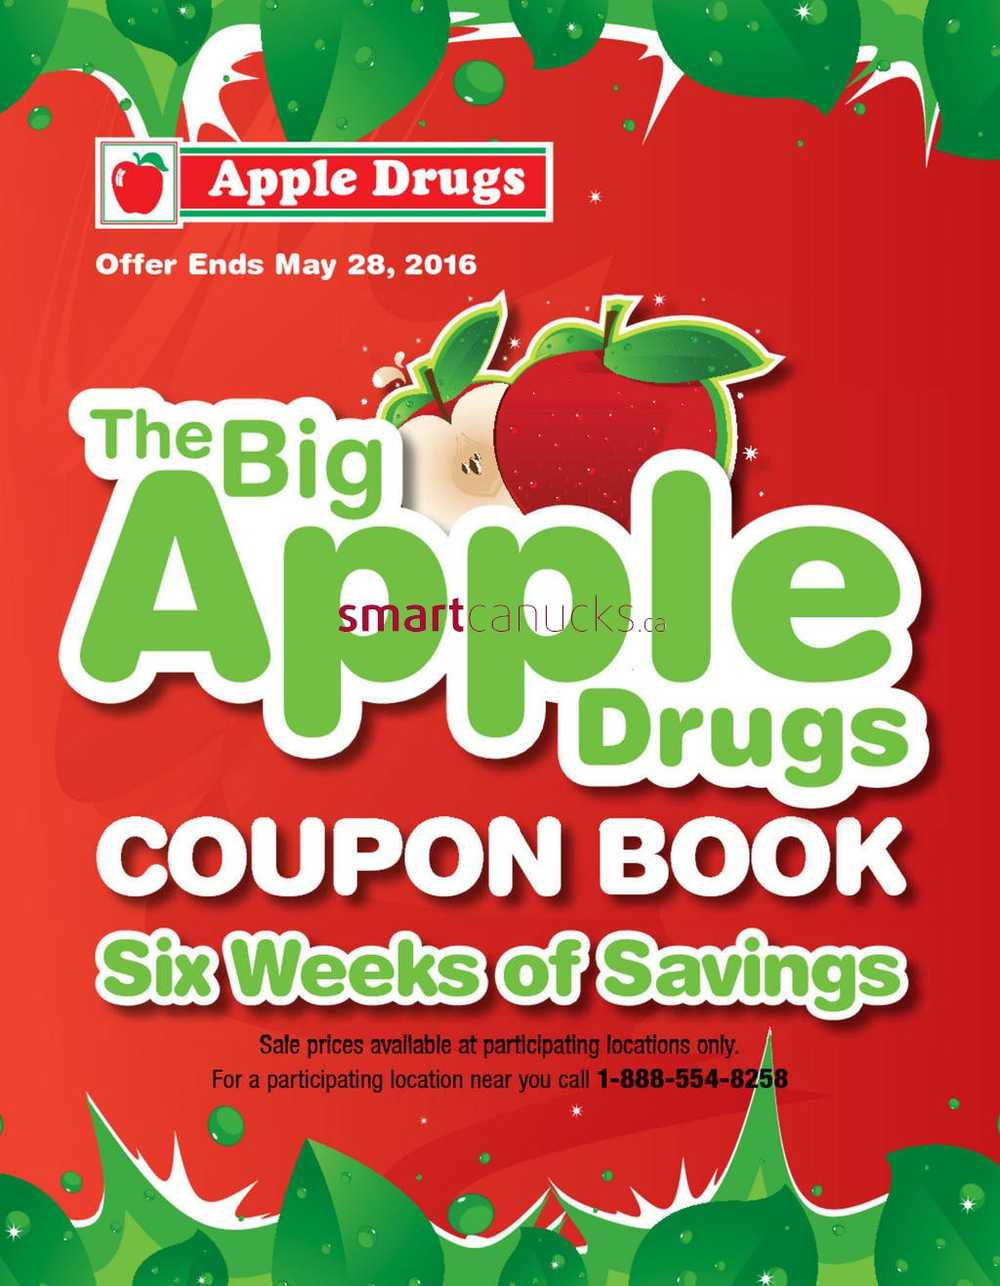 Apple discount coupons